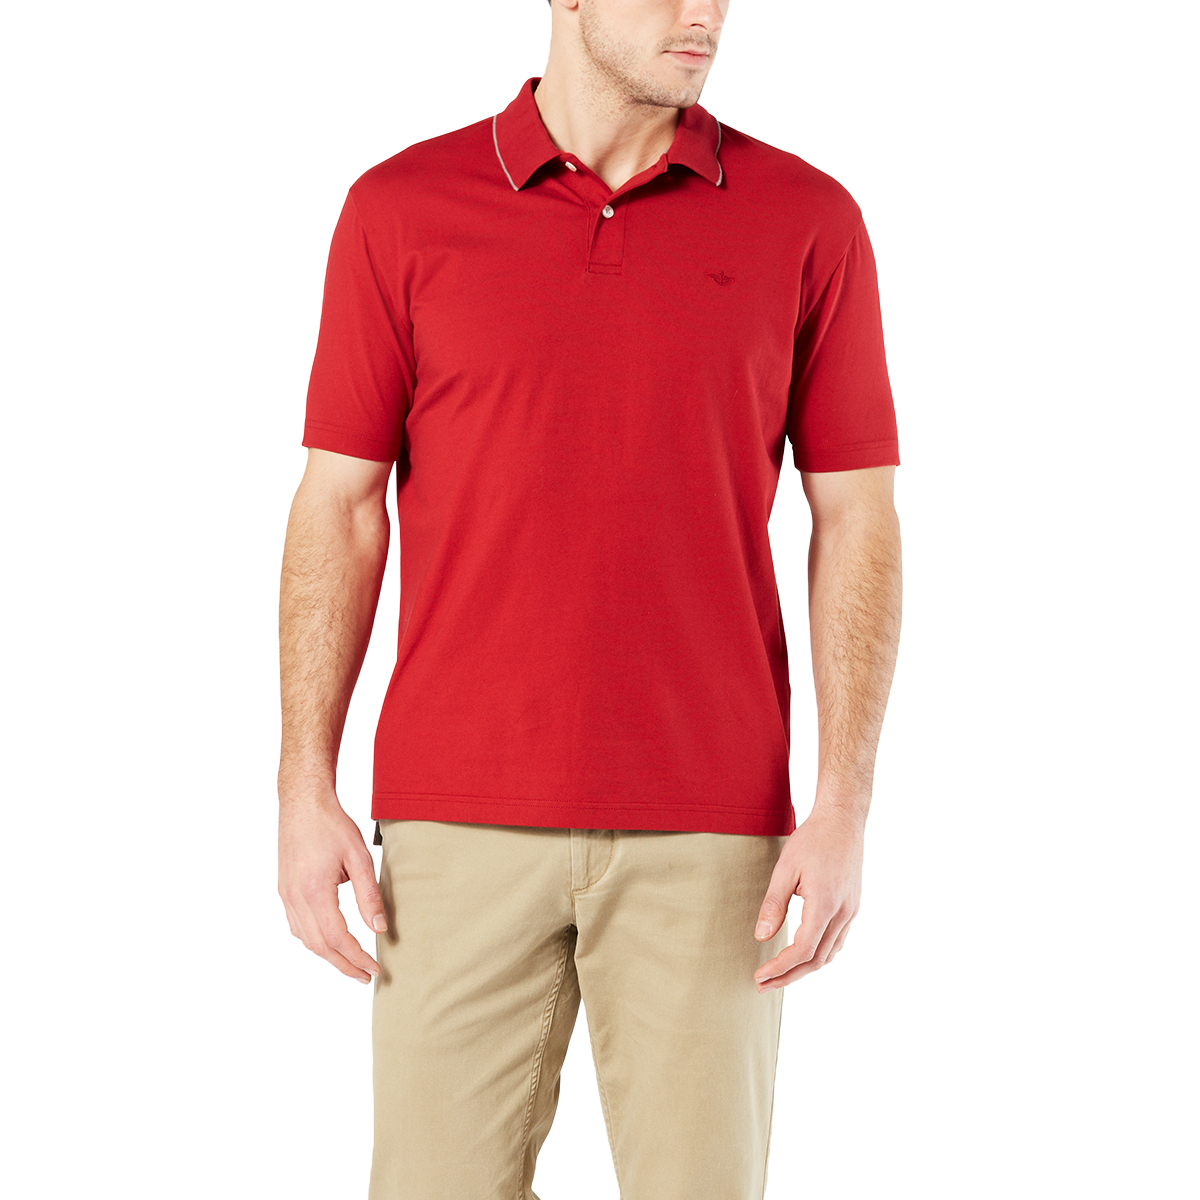 Dockers Men's Performance Short-Sleeve Polo Shirt - Red, M